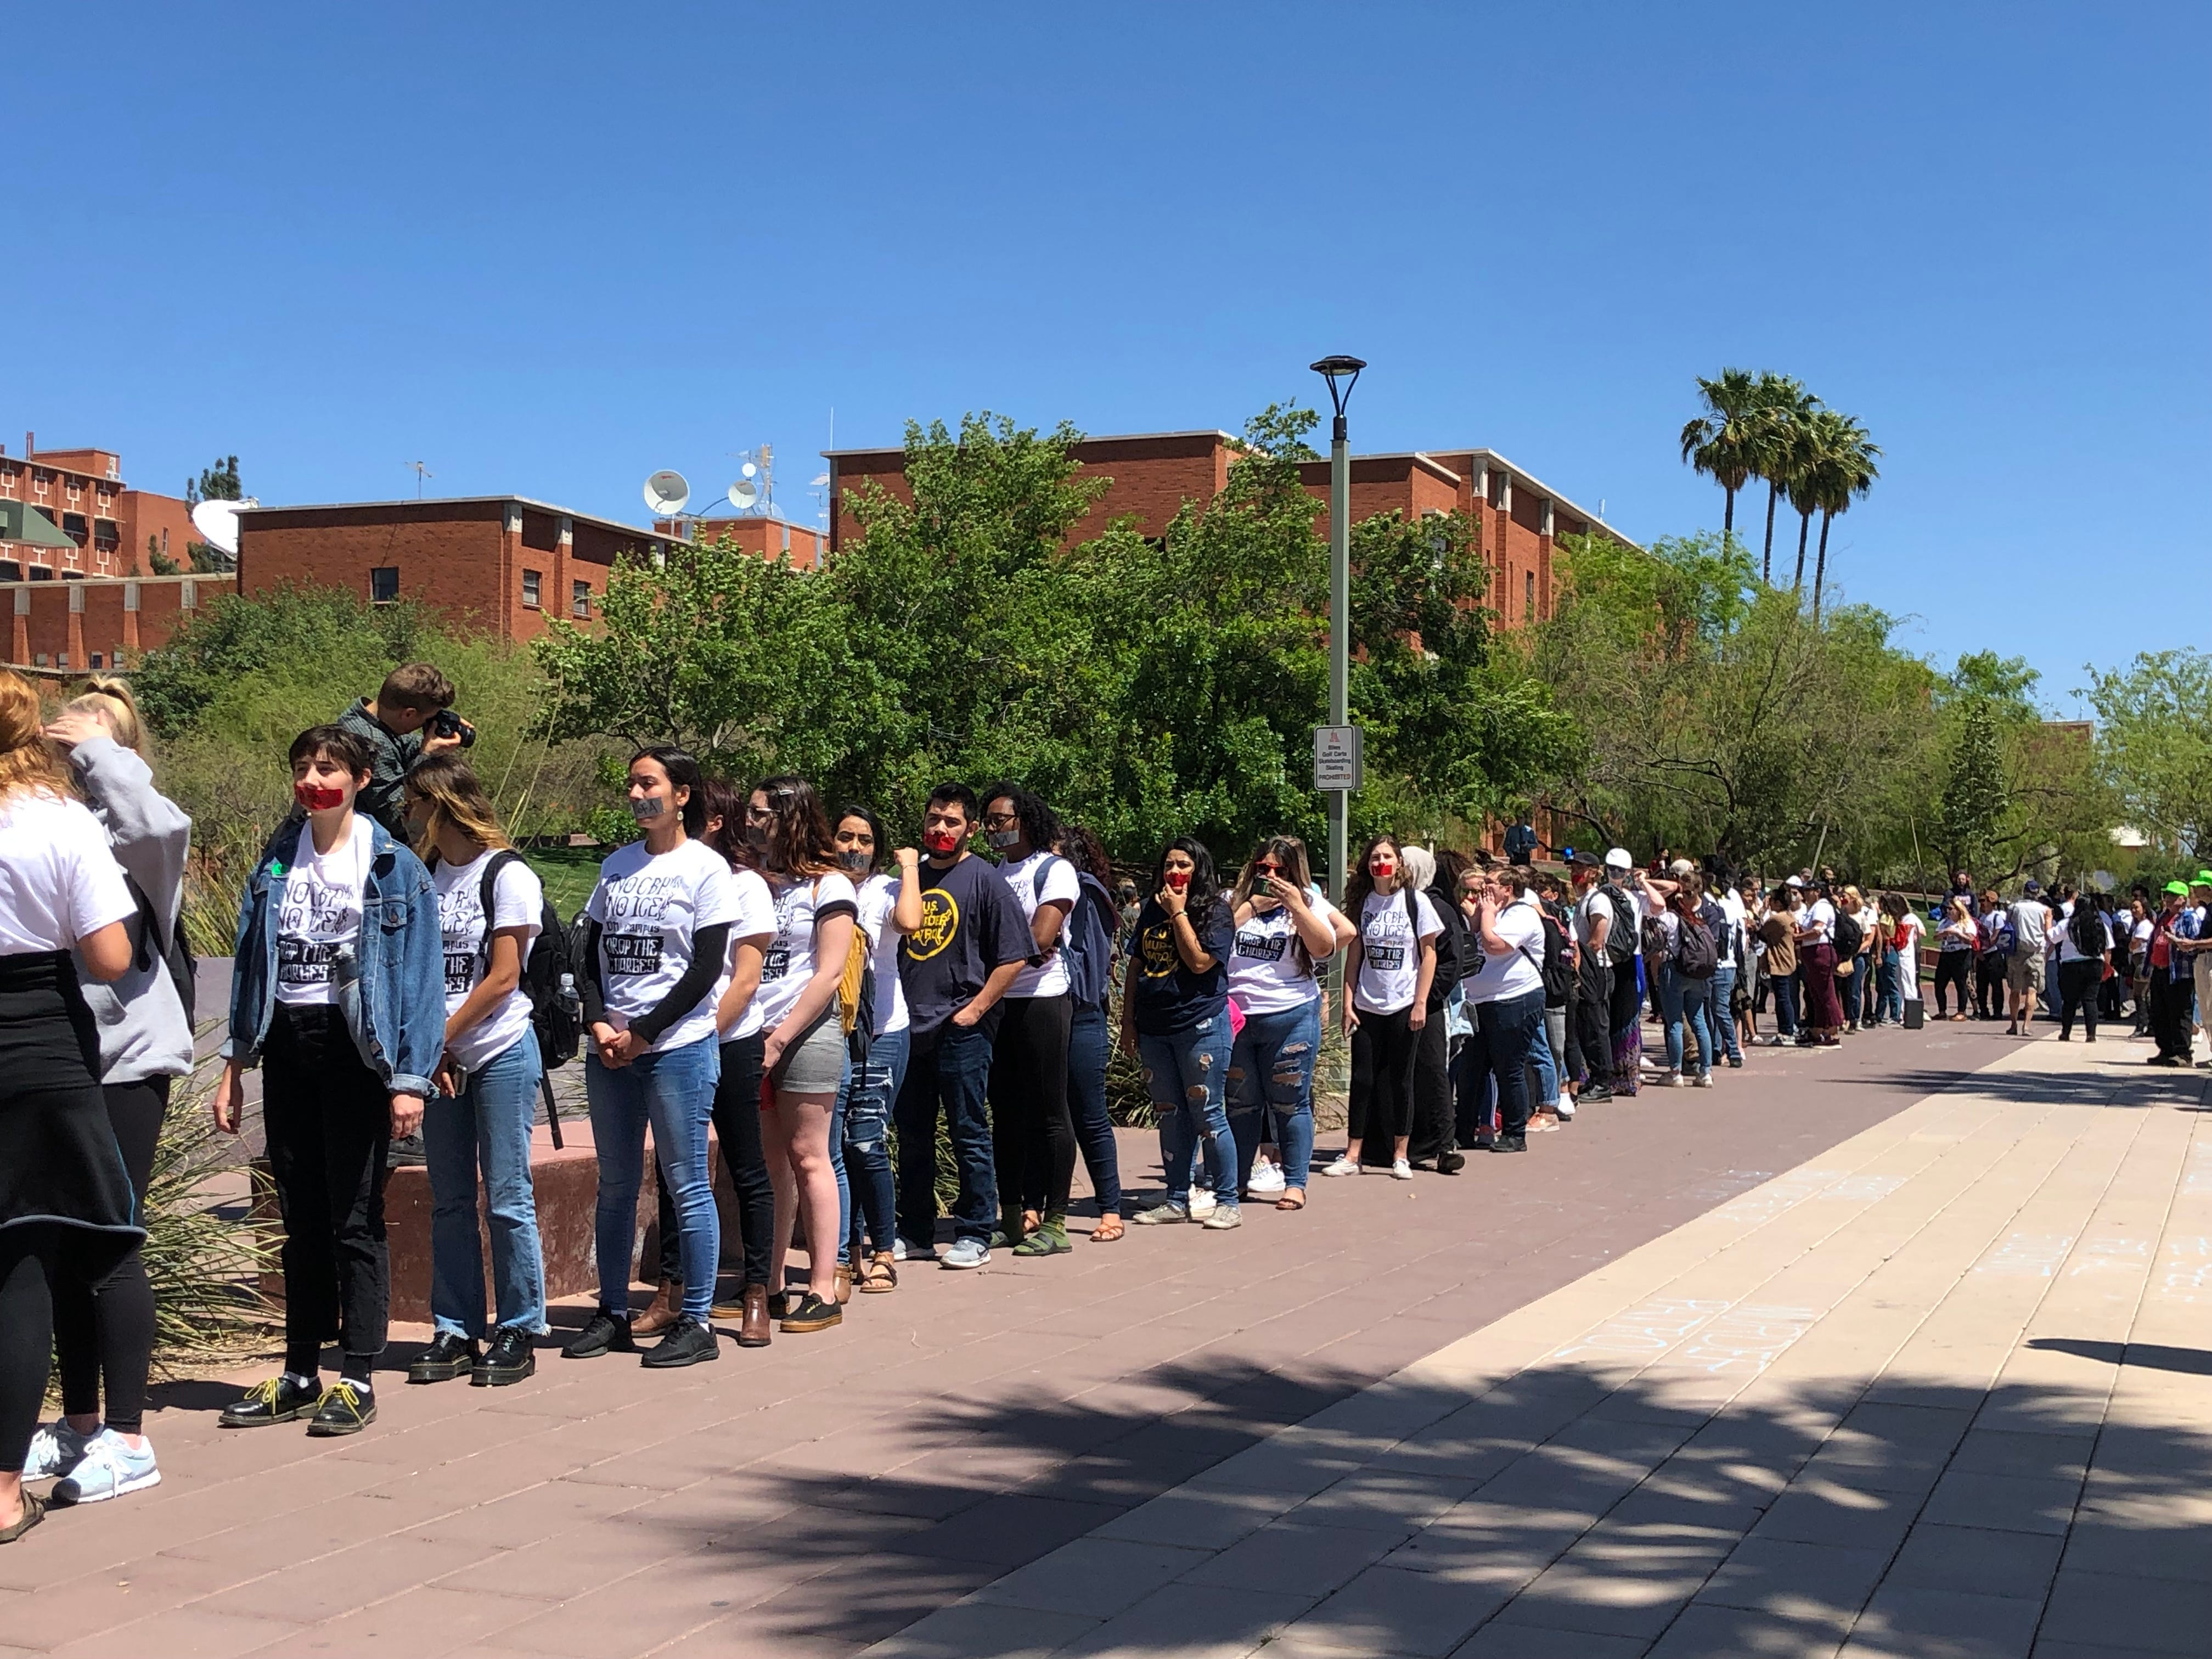 Students wait in line to get into the Arizona Board of Regents meeting on April 11, 2019, in Tucson to protest the charges against three students in the border patrol protest on March 19.